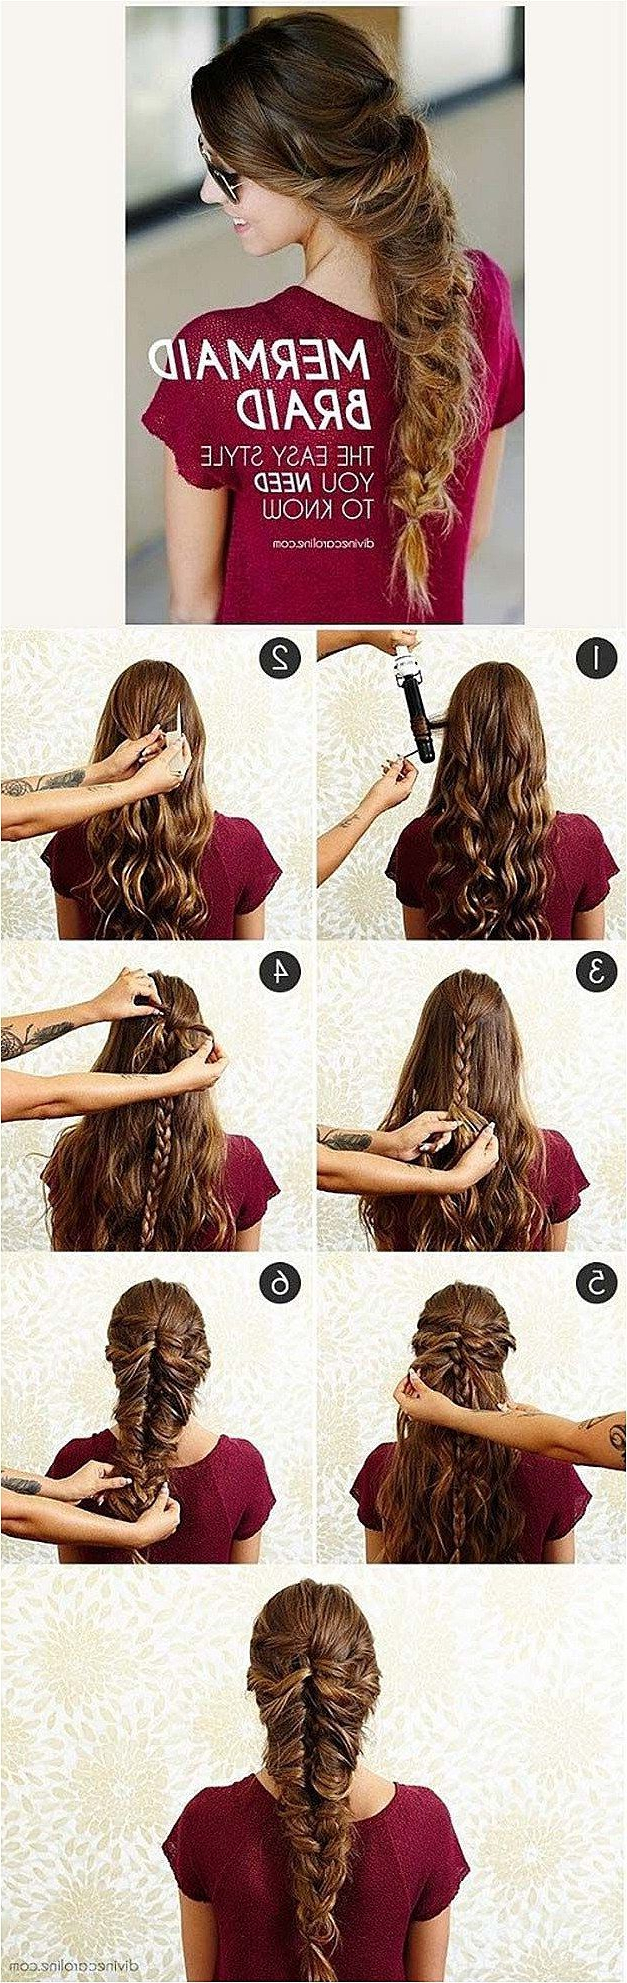 Best Hair Braiding Tutorials – Mermaid Braid – Easy Step Intended For Famous Mermaid Fishtail Hairstyles With Hair Flowers (View 8 of 20)